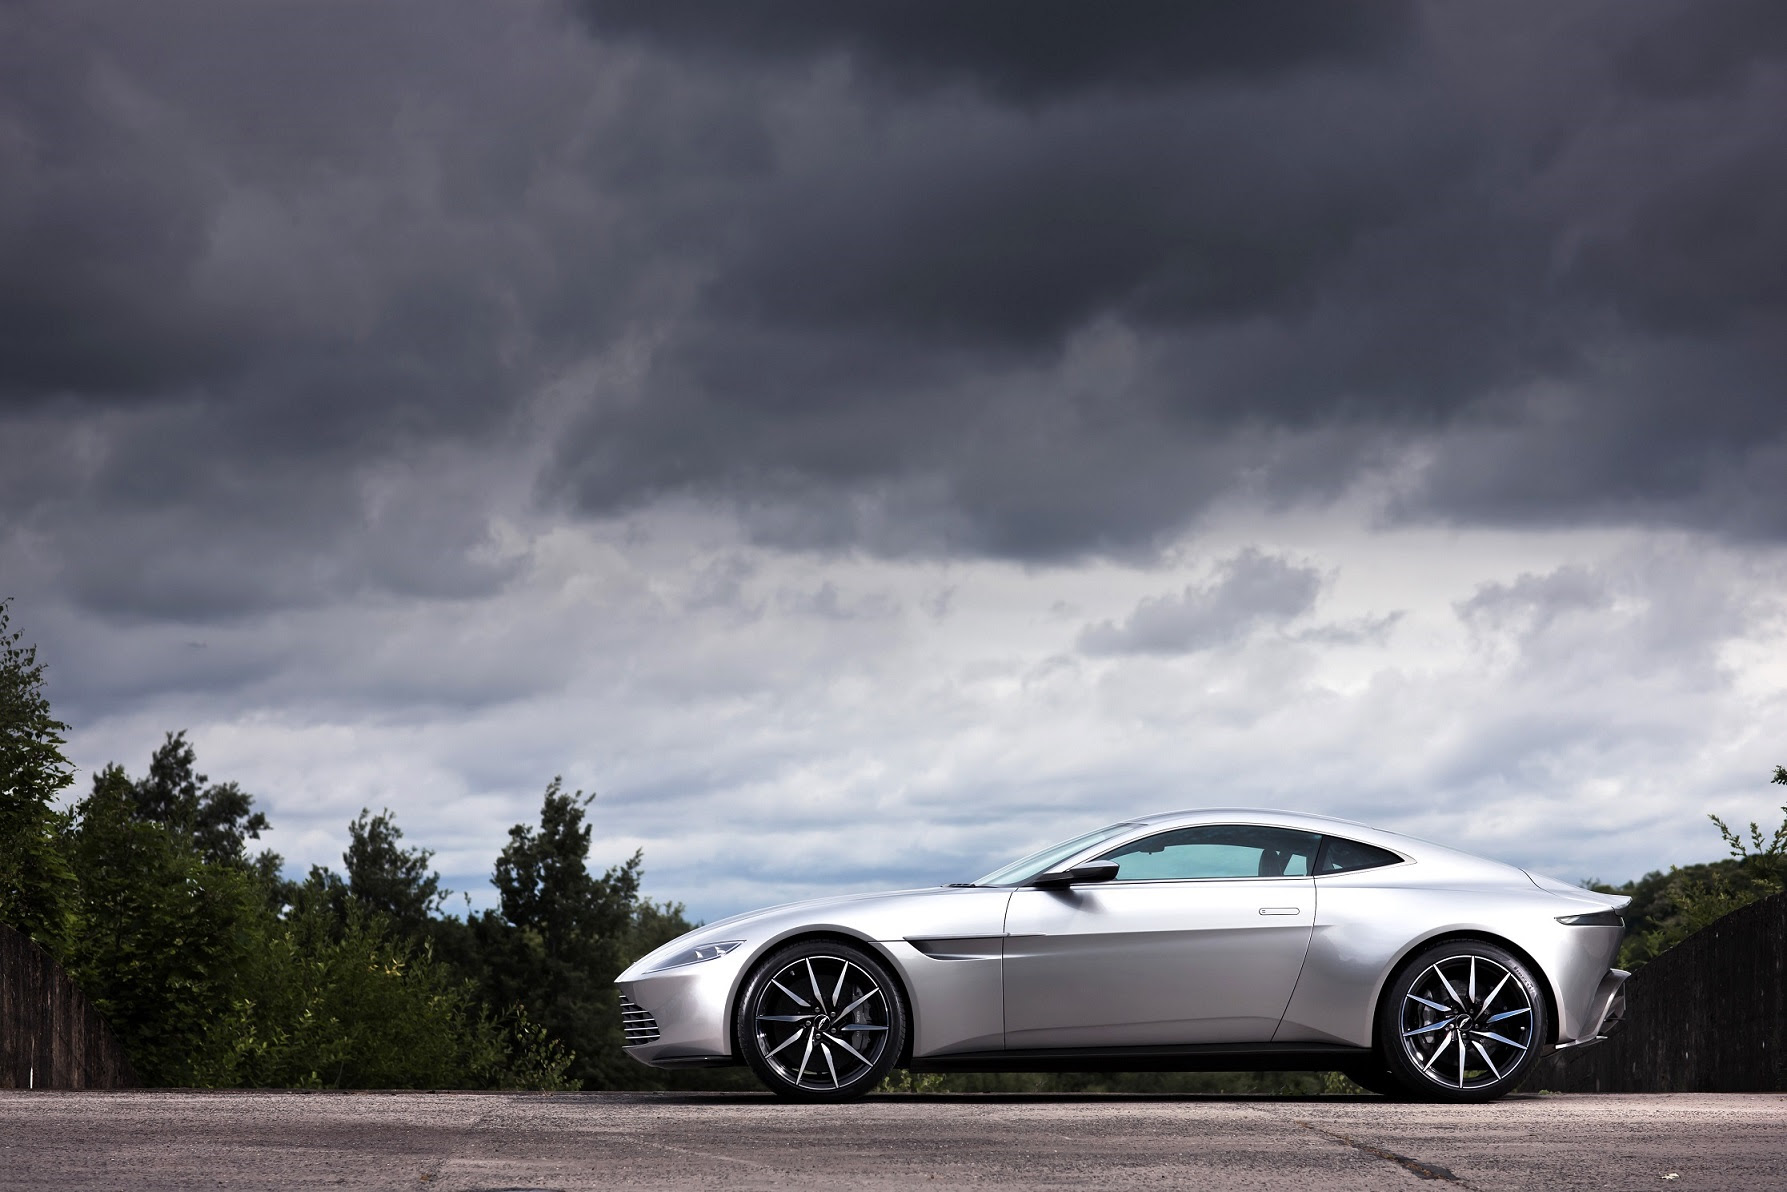 The Aston Martin DB10 made for the James Bond film Spectre sold for $3.5 million at a Christie's auction on Feb. 18, 2016.